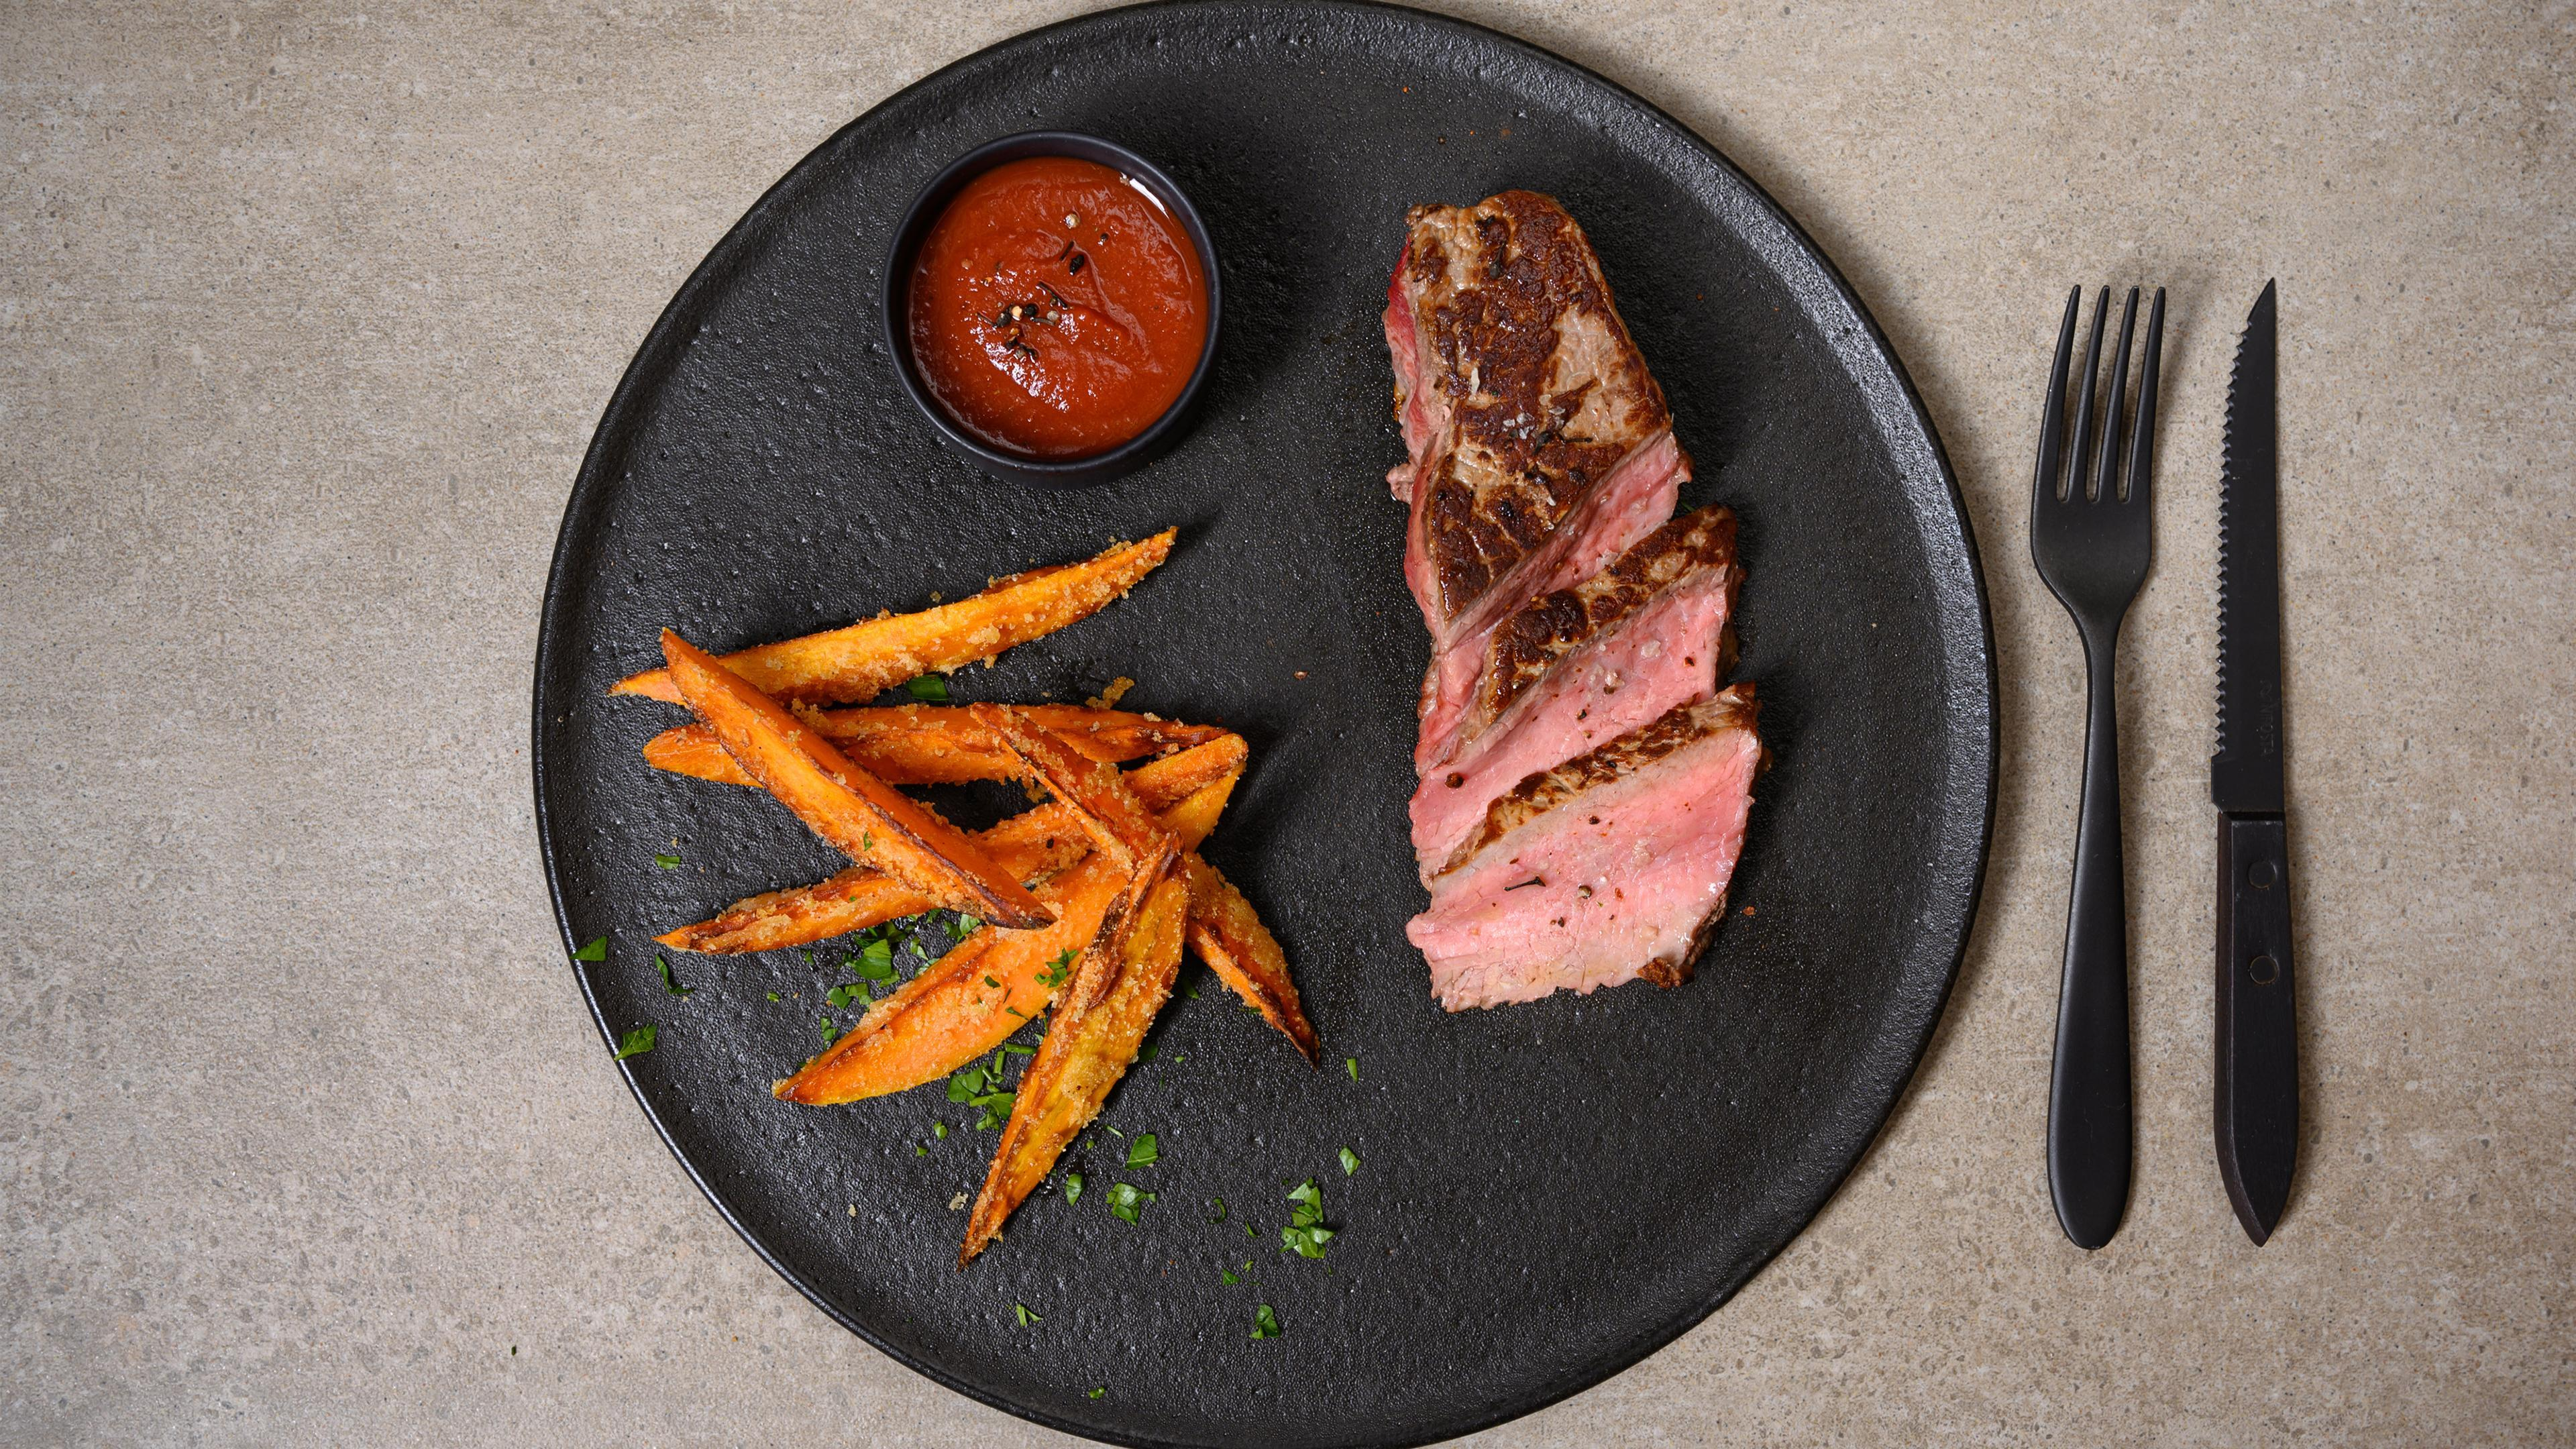 Steak and sweet potato fries with healthy barbecue sauce